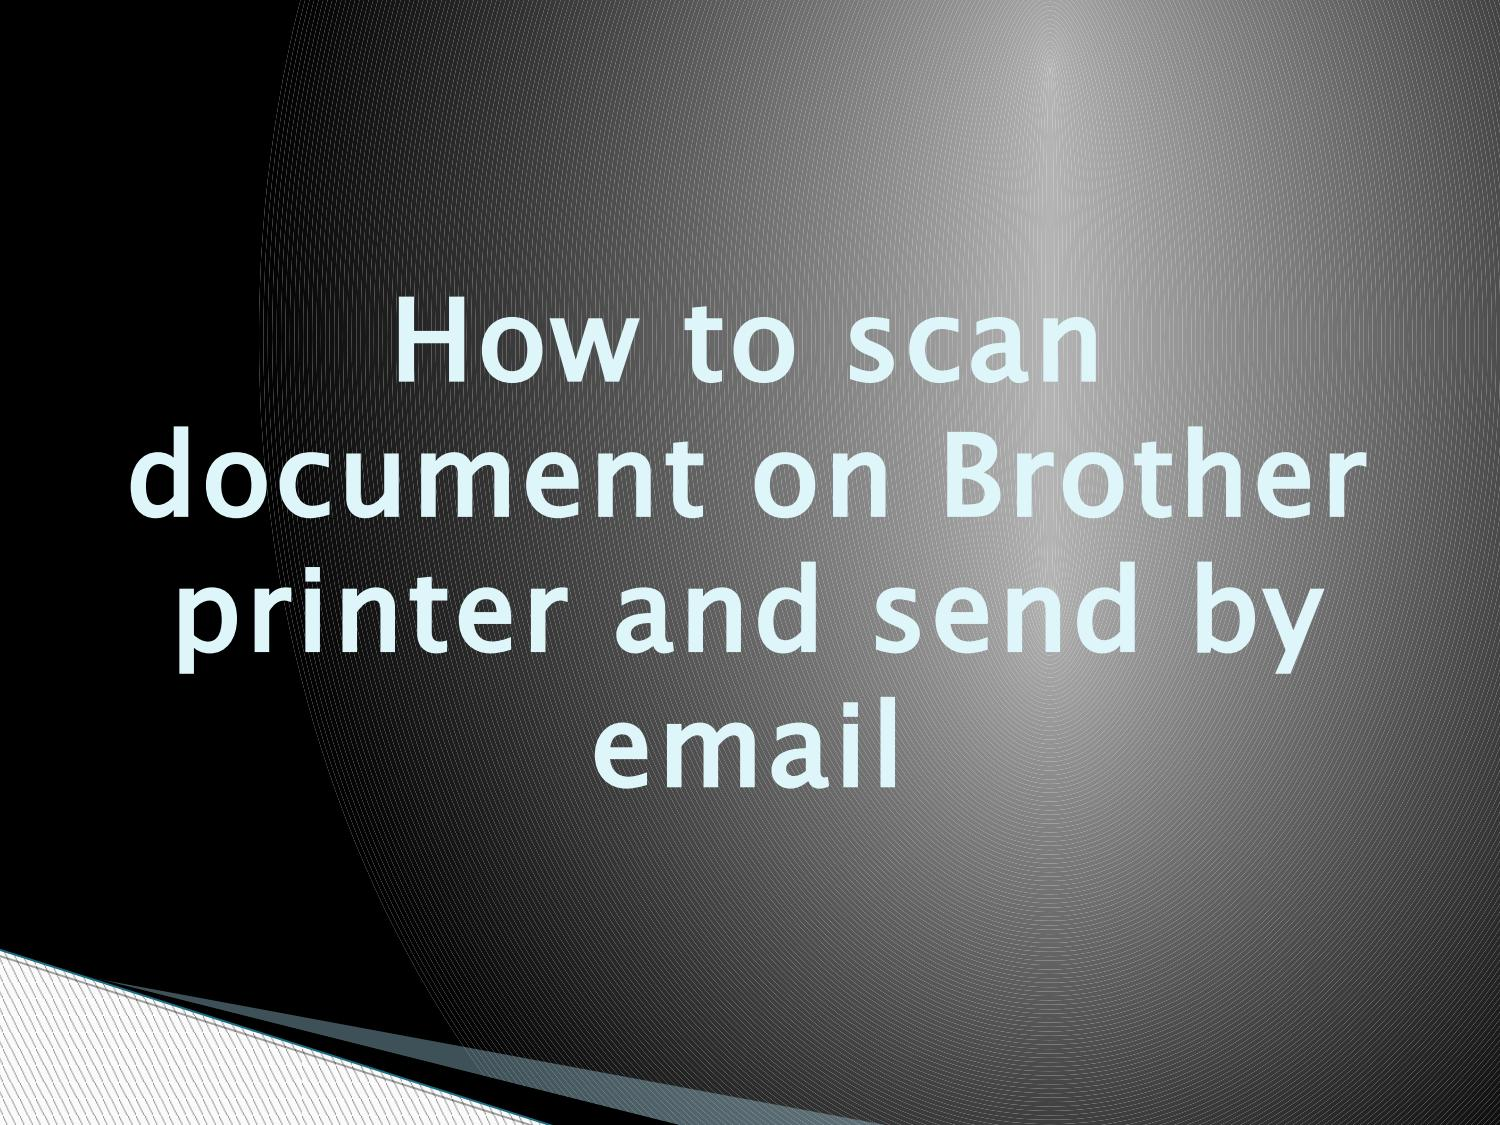 How to scan document on brother printer and send by email by